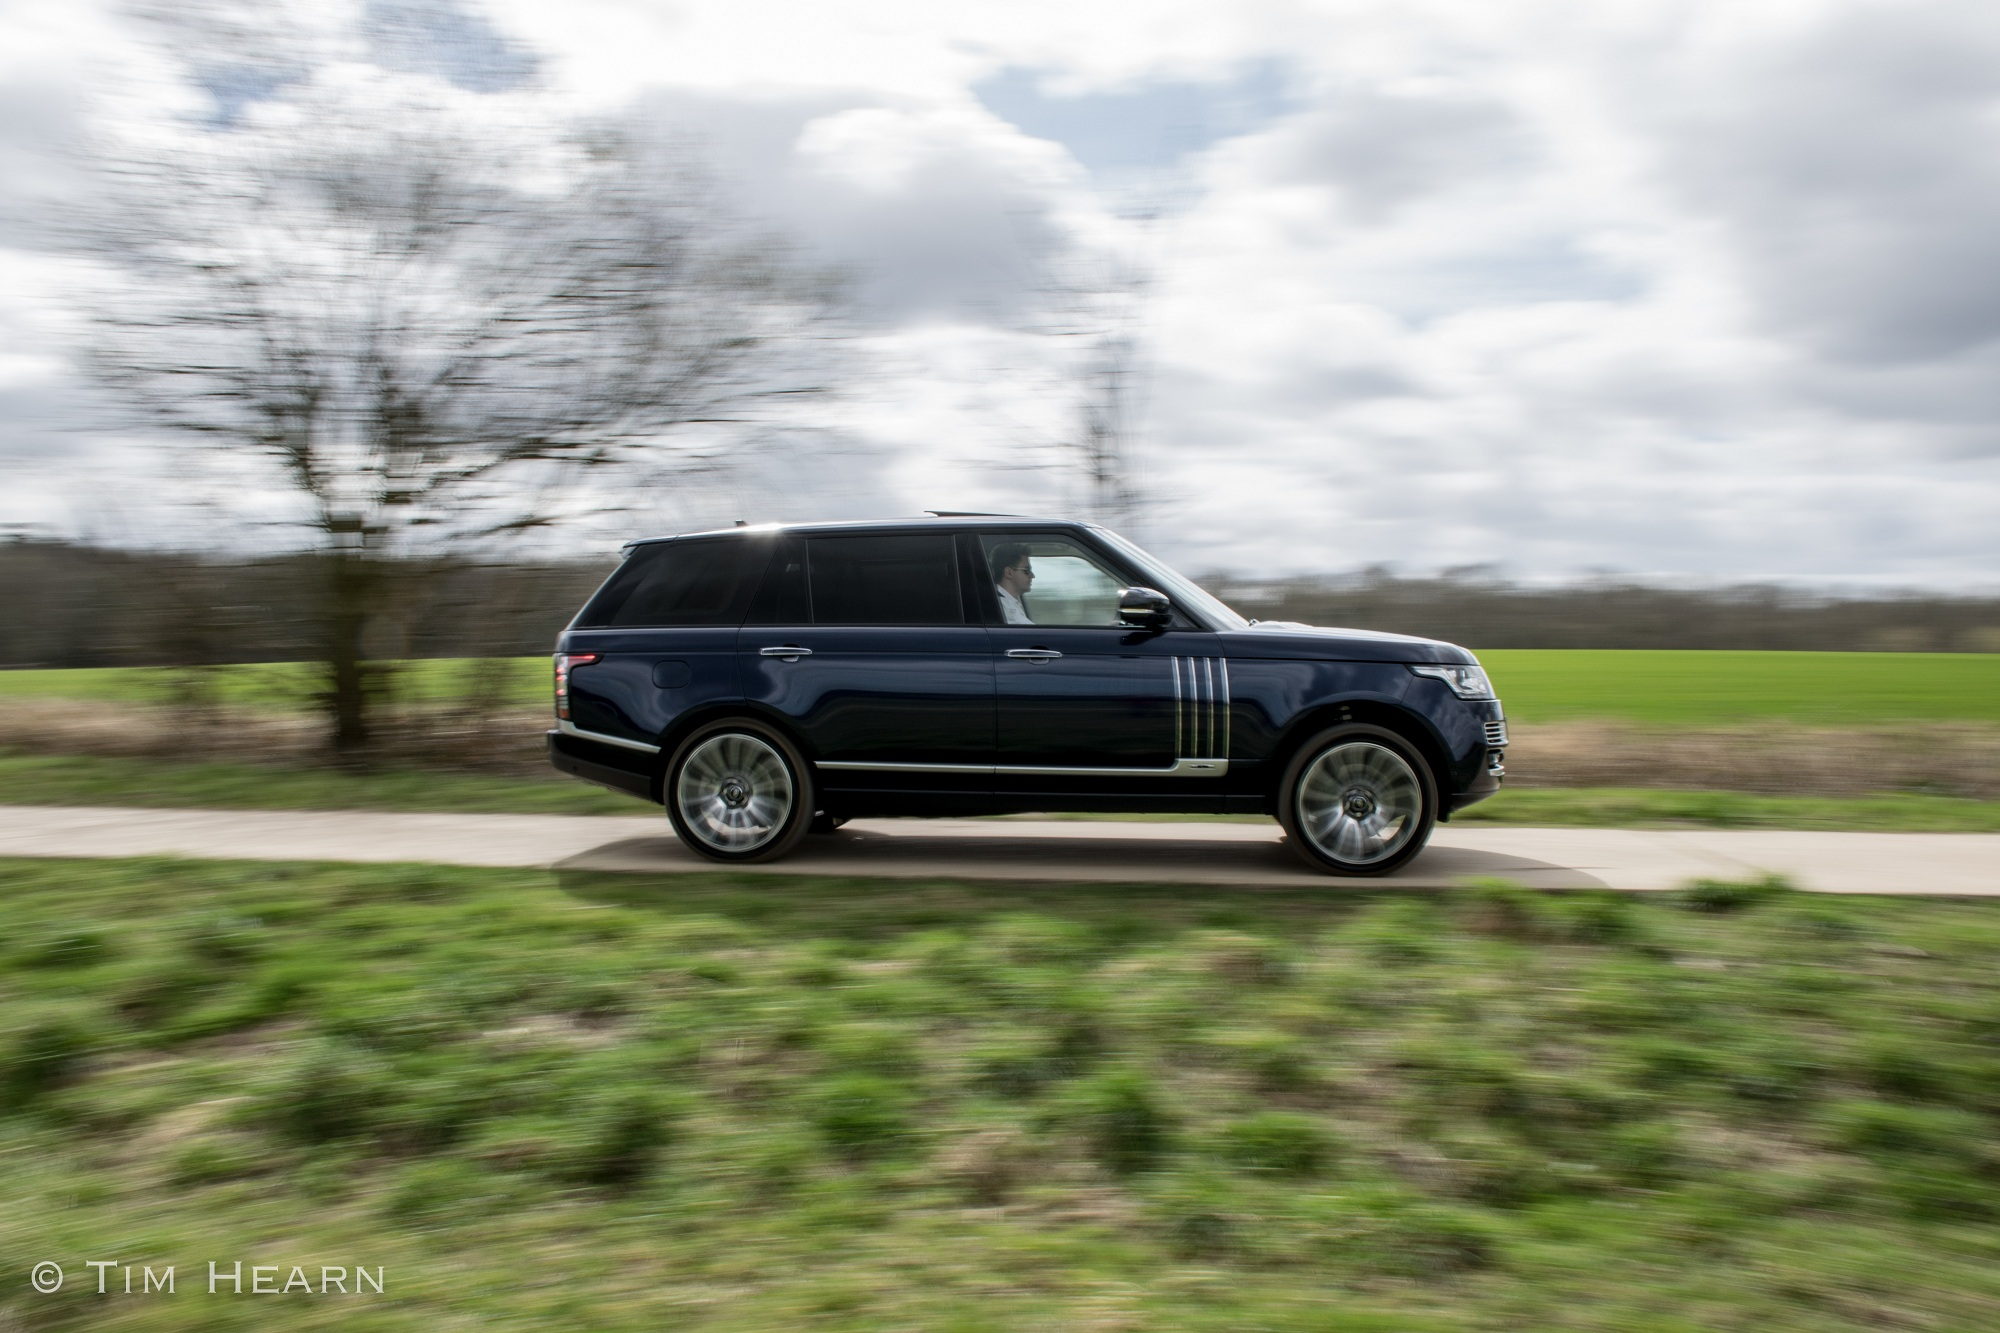 AutoPrive Review of Range Rover Long Wheelbase